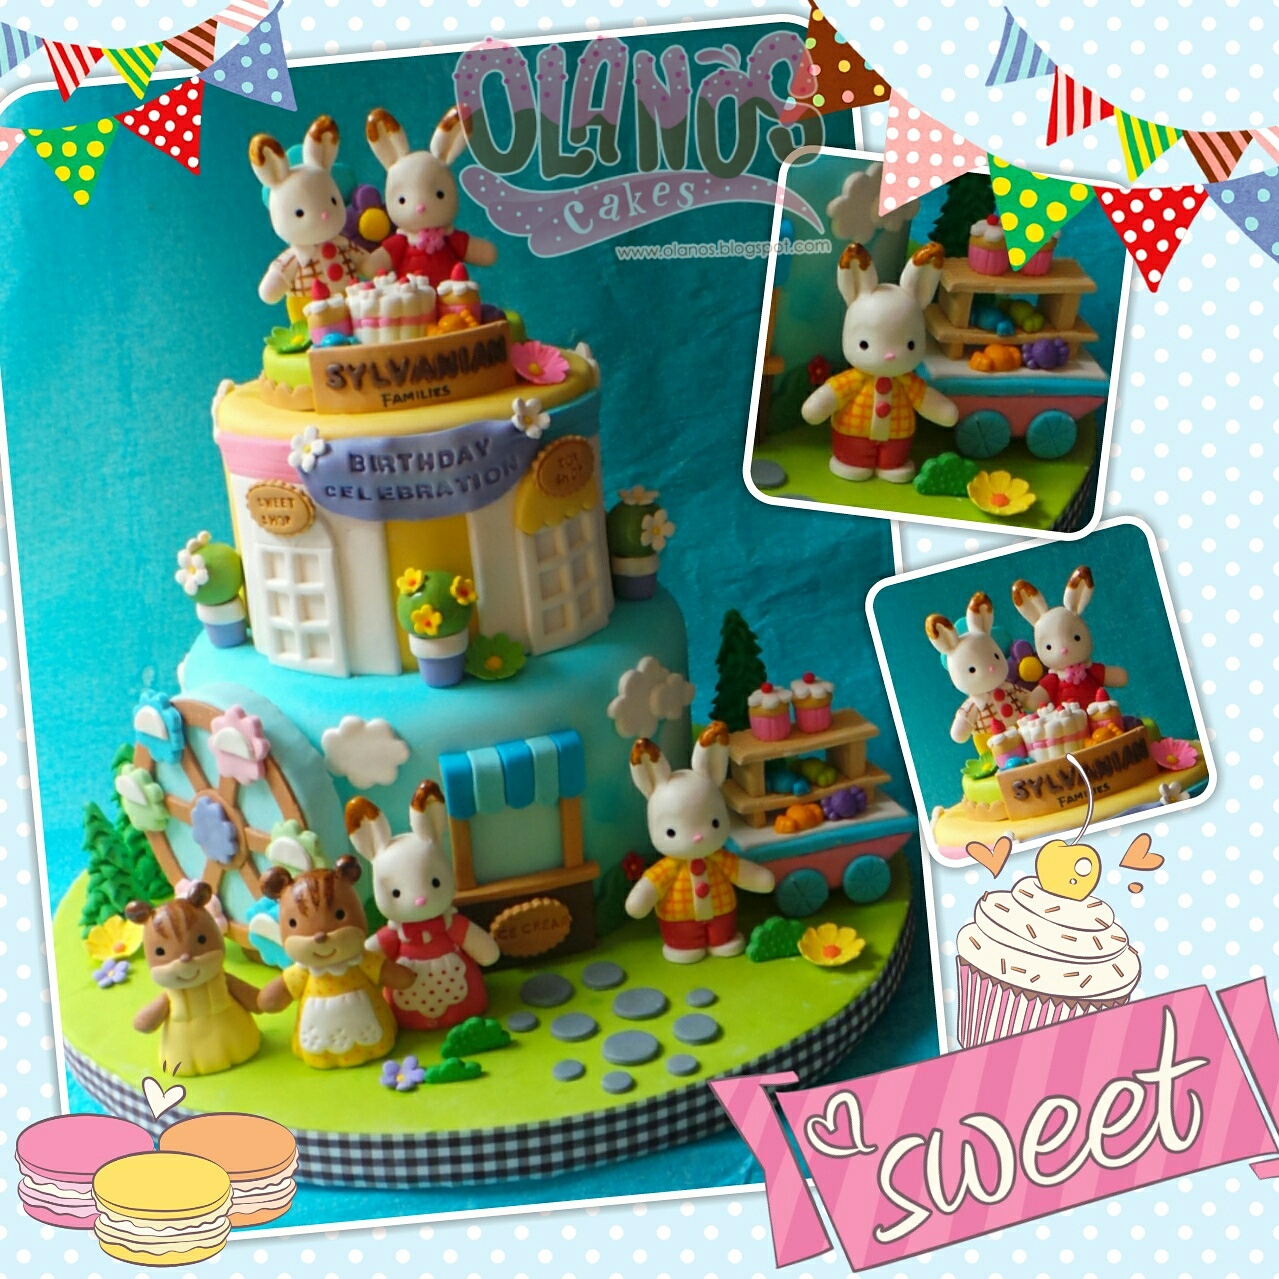 Olanos: Sylvanian Family Cake for Sylvanian Family Anniversary Event at Toys City